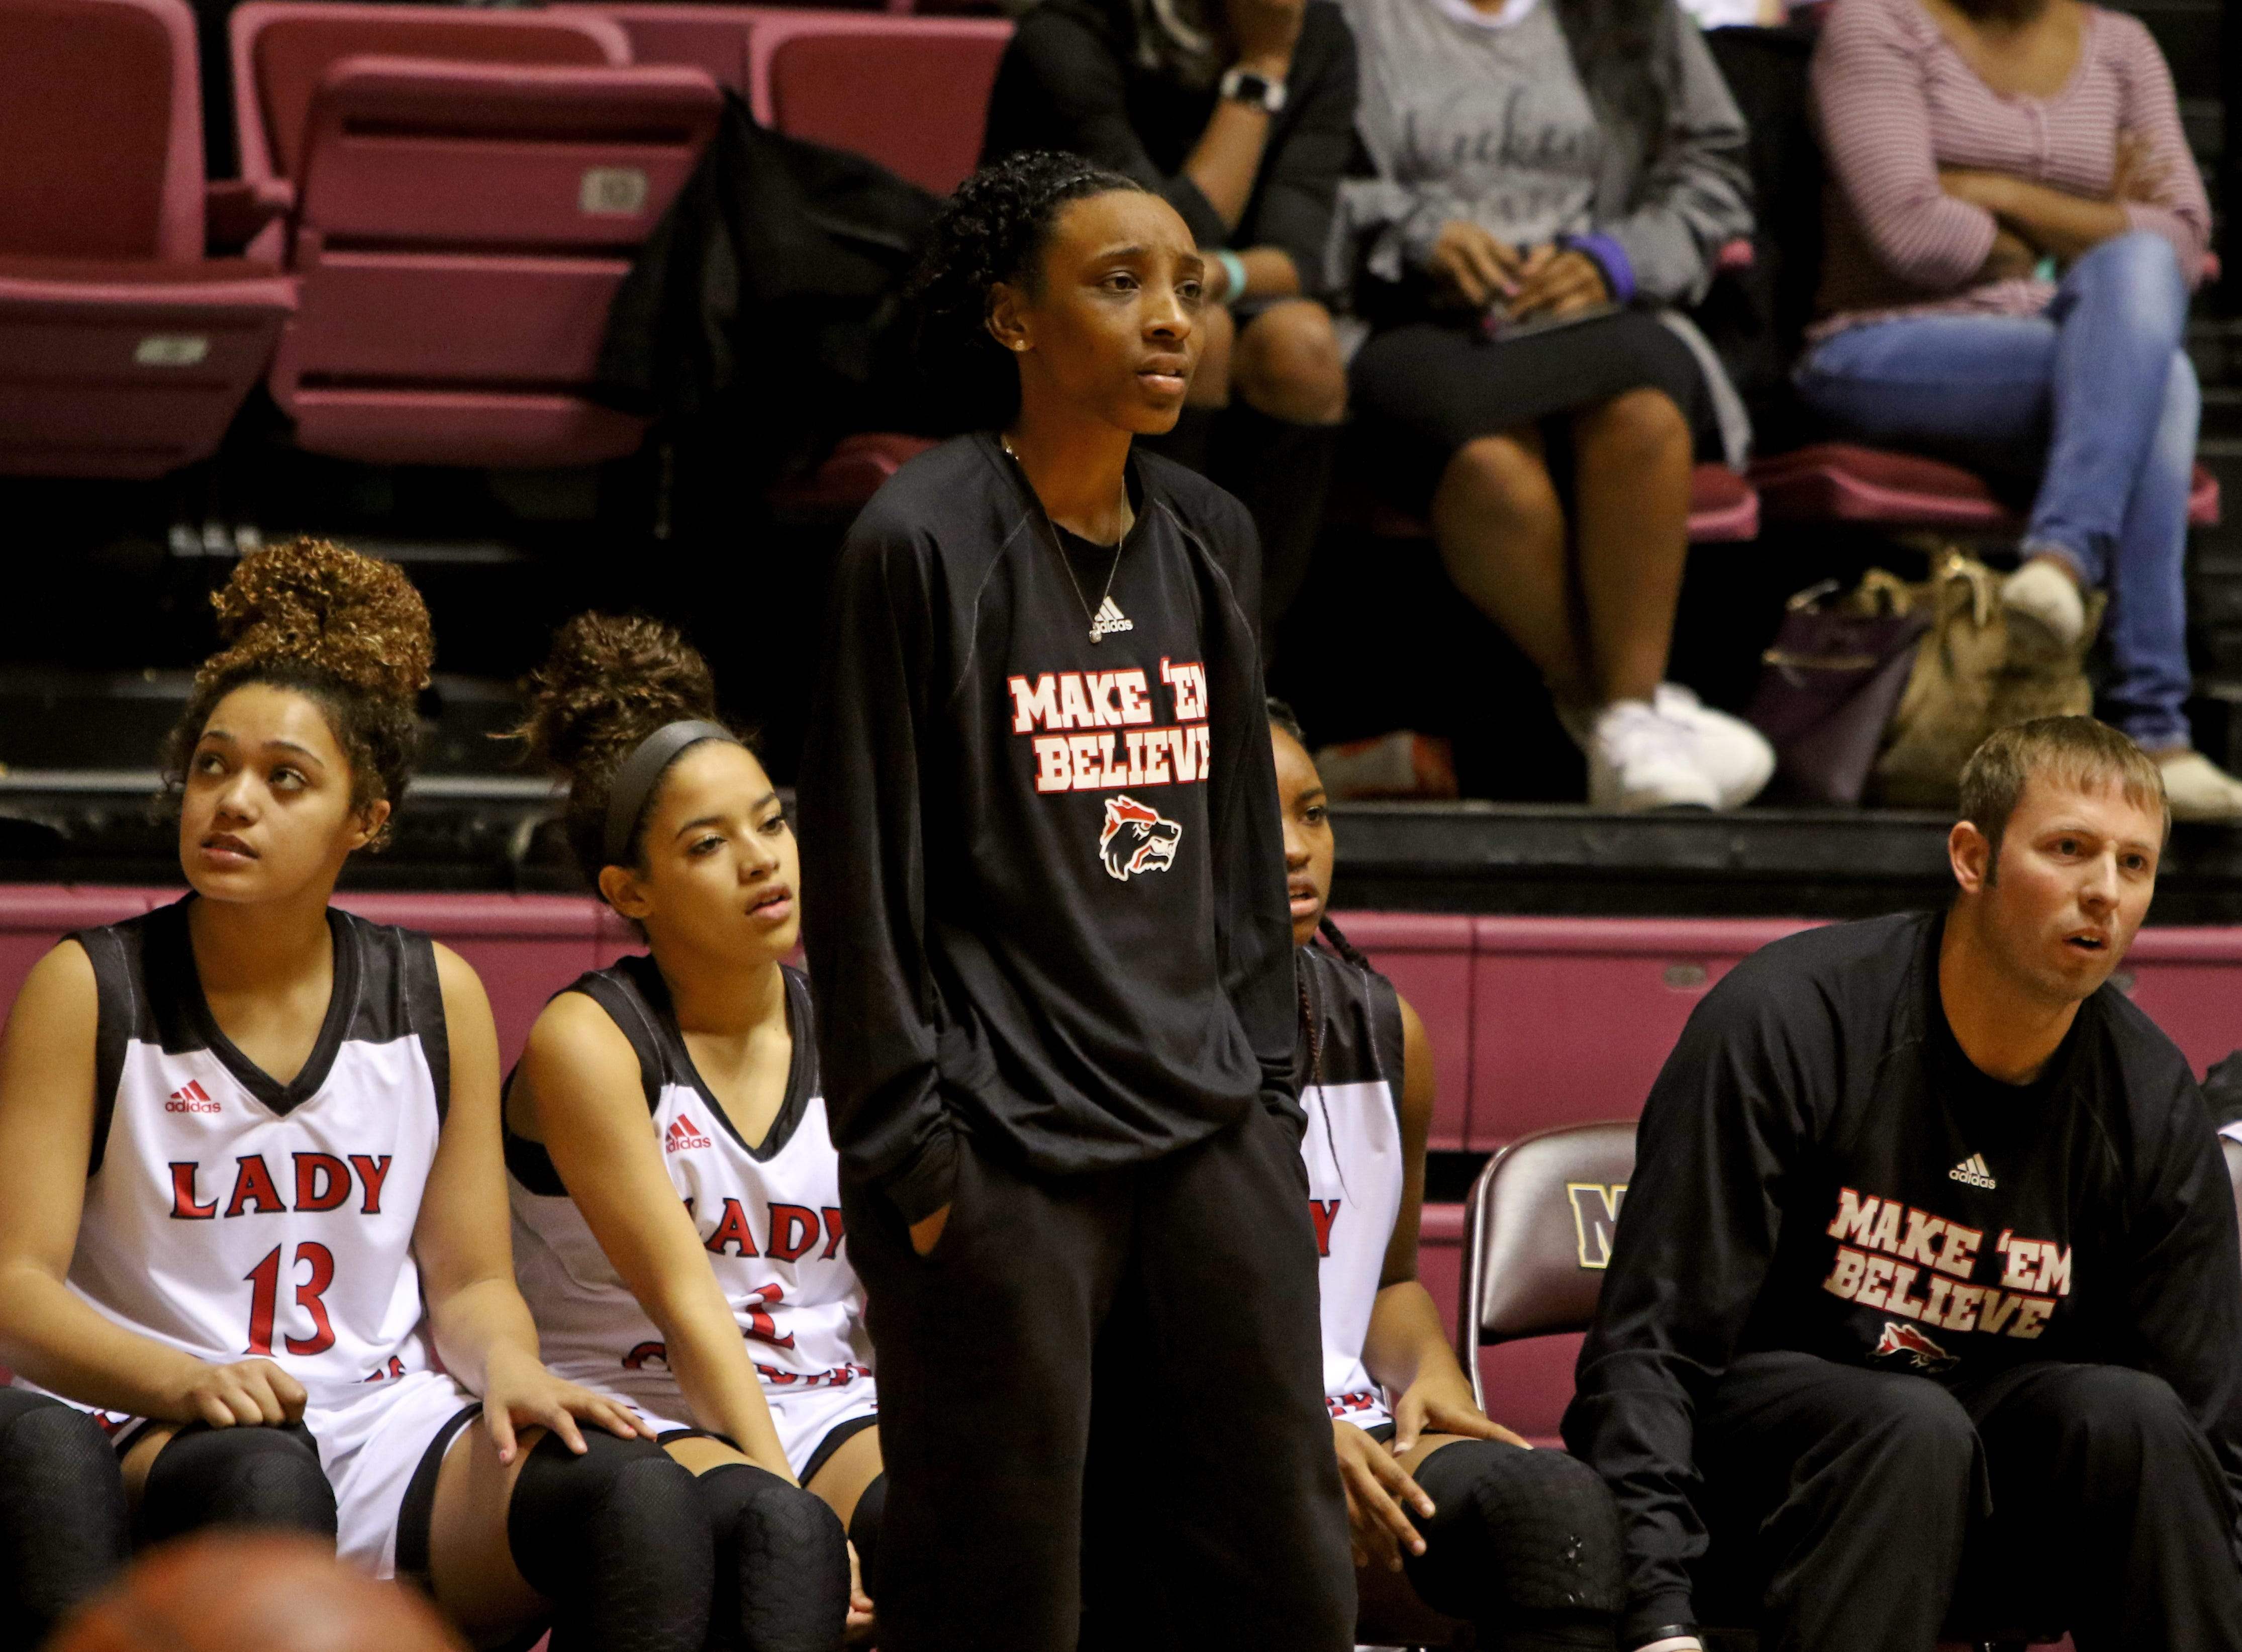 Wichita Falls High School head basketball coach Bri Brooks watches her team in the game against Hirschi Saturday, Dec. 1, 2018, at D.L. Ligon Coliseum at Midwestern State University.